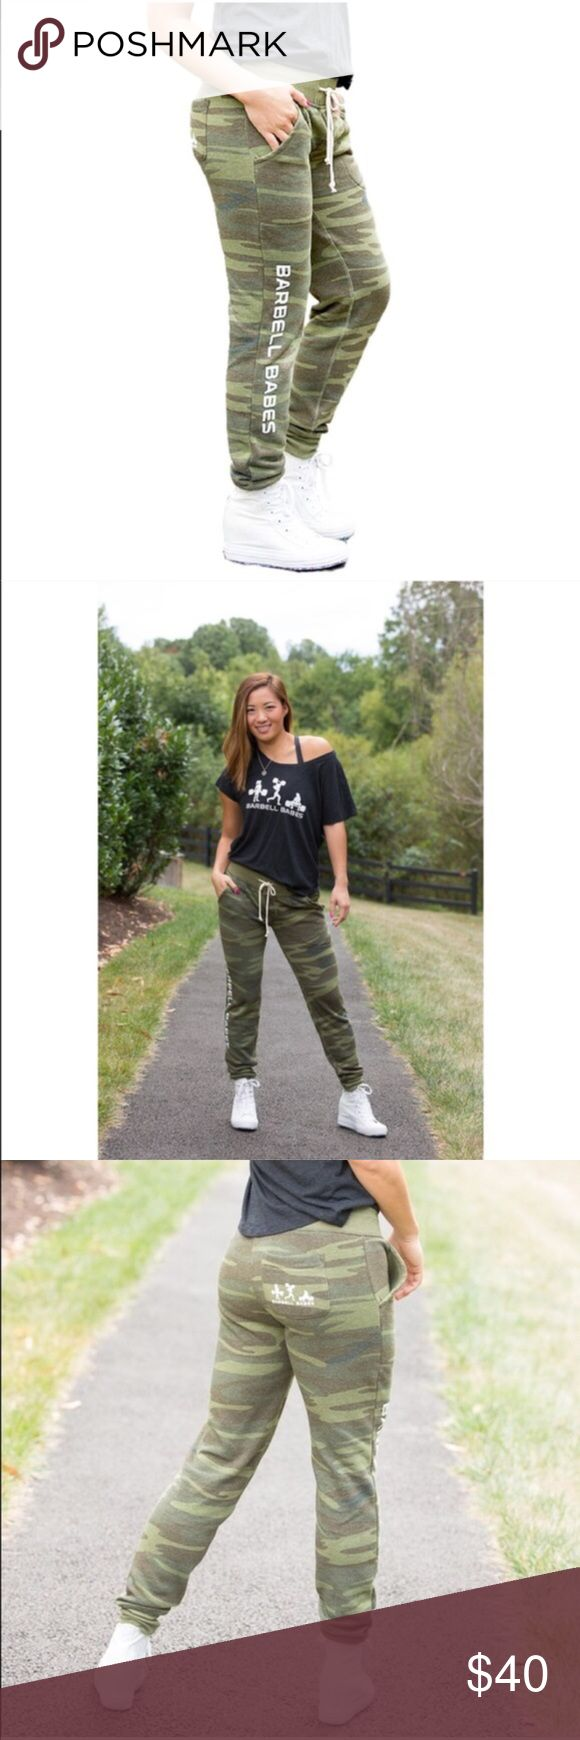 🆕 Barbell Babes Camo Fleece Joggers Pants S Barbell Babes Fleece Joggers in Camo. True to size. Natural piling occurs in this fabric, especially in areas of friction, like the inner thighs. 🚫 No trades. No holds. 📦 Fast shipping! Barbell Babes Pants Track Pants & Joggers